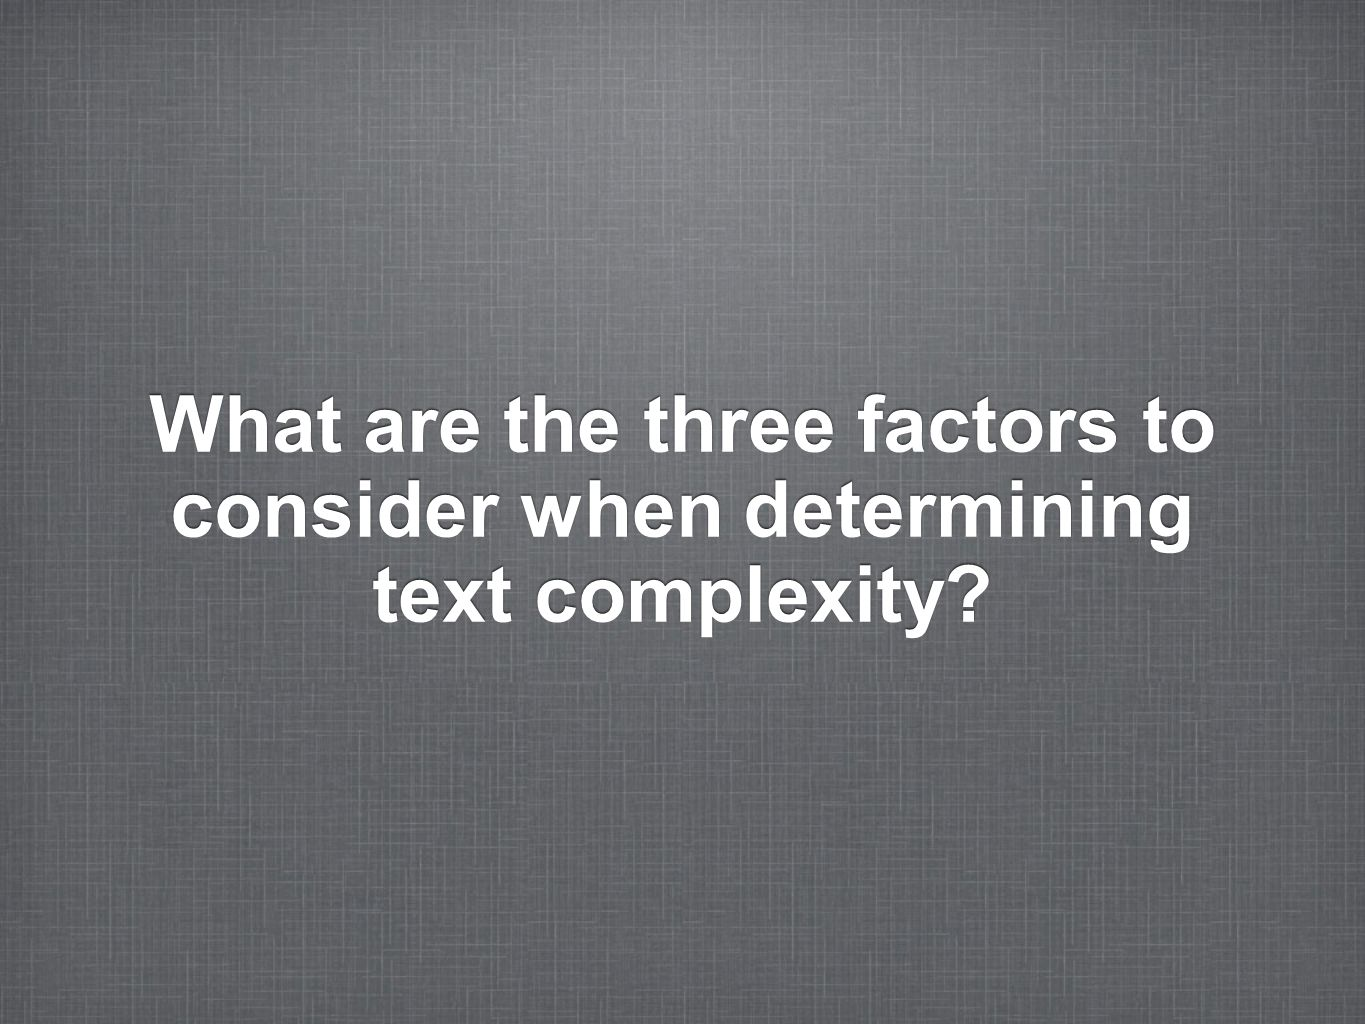 What are the three factors to consider when determining text complexity?